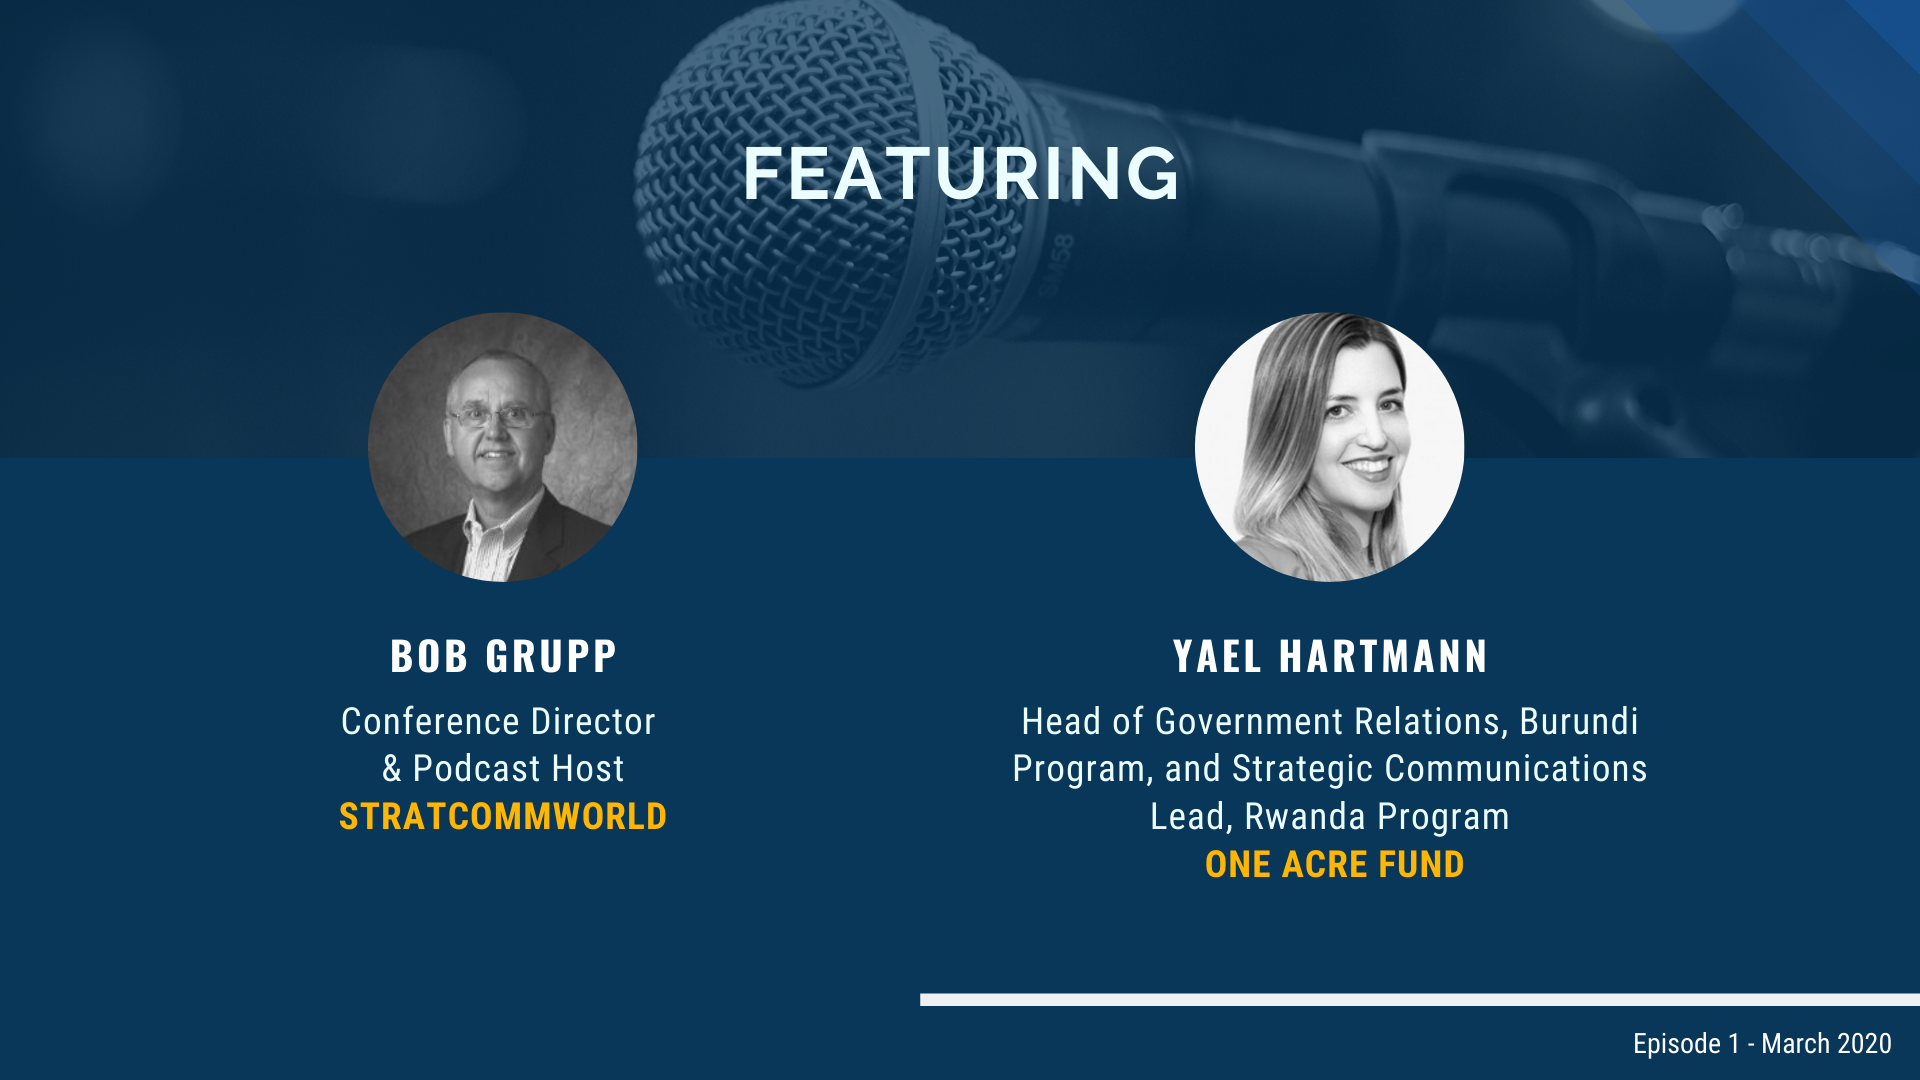 Featuring speakers Bob Grupp and Yael Hartmann